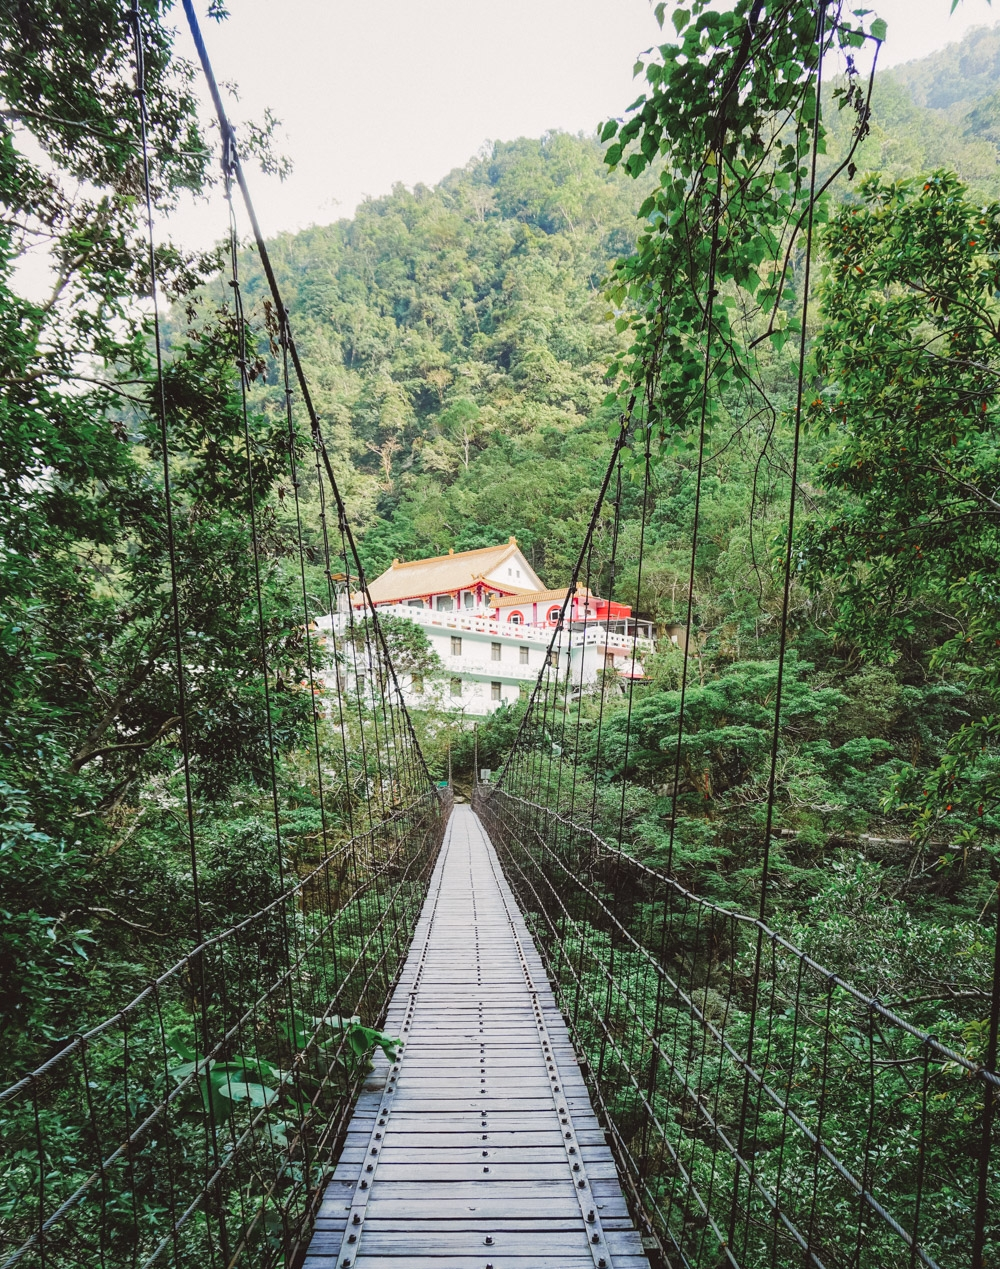 Taipei, Haulien, Jiufen, TW - We were so lucky to experience a well-round trip around Taiwan from natural wonders in Hualien to busy city streets in Taipei.